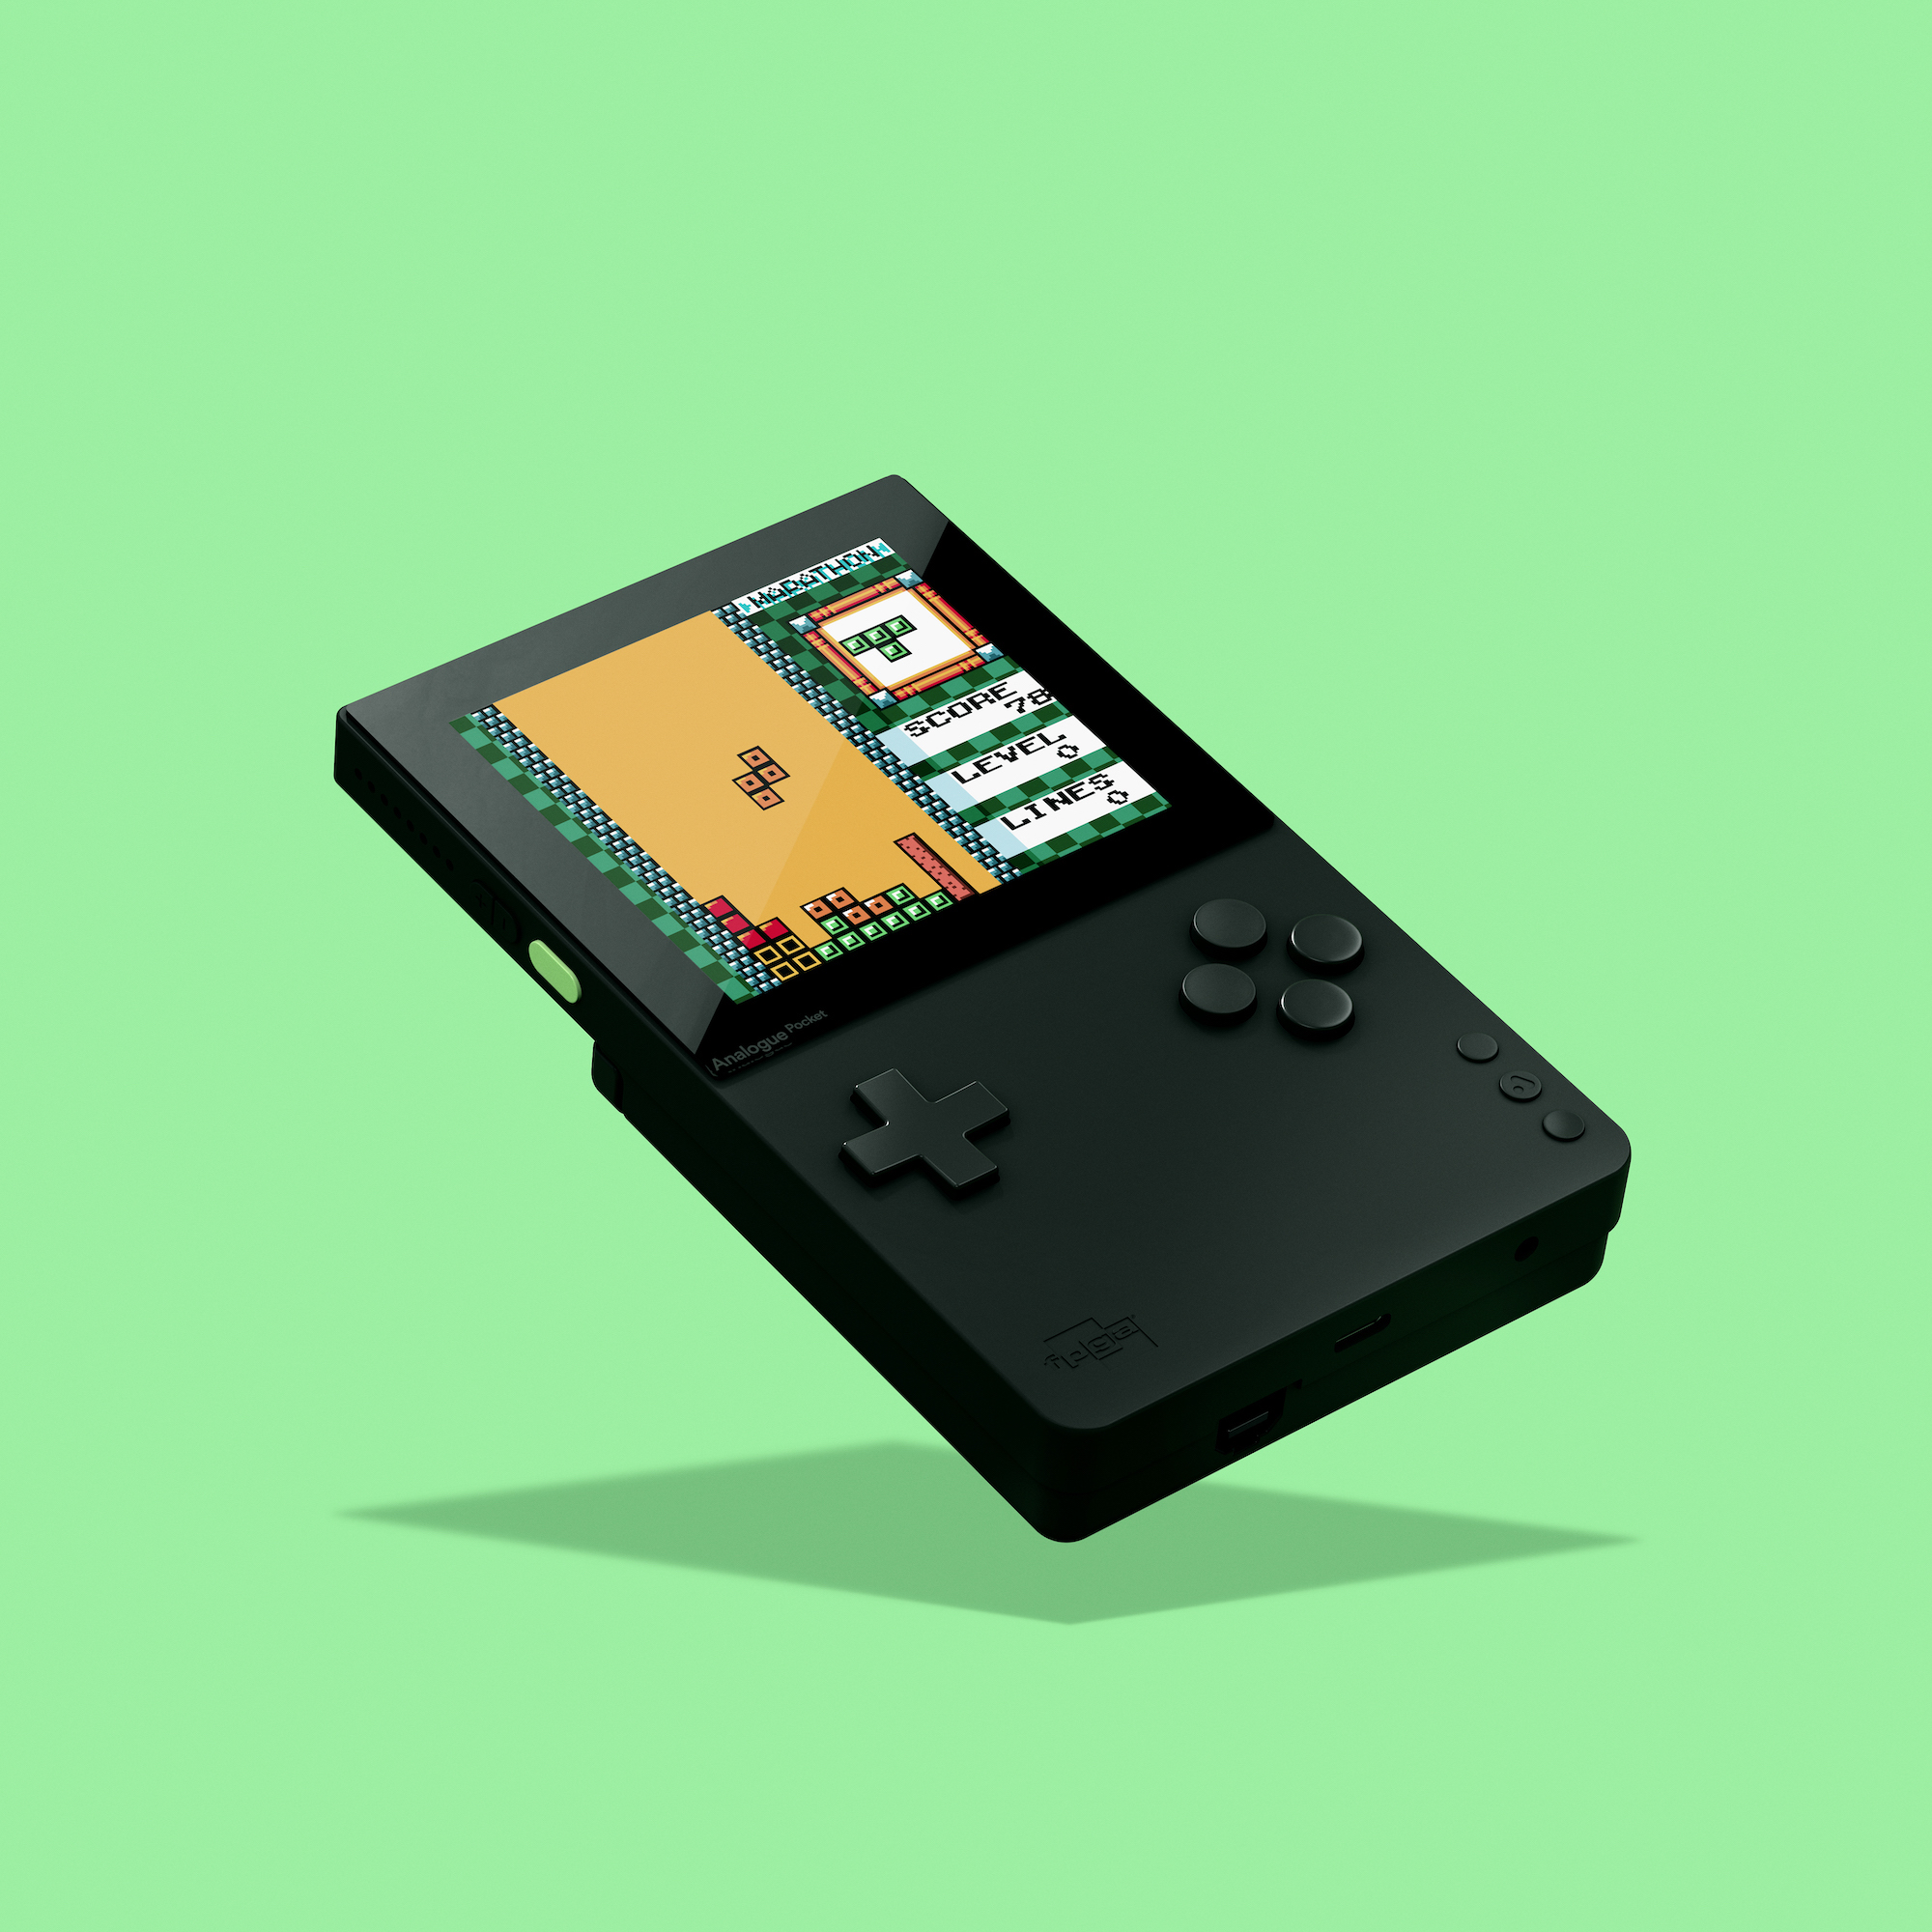 The Analogue Pocket, a portable for playing classic cartridges from the Game Boy era